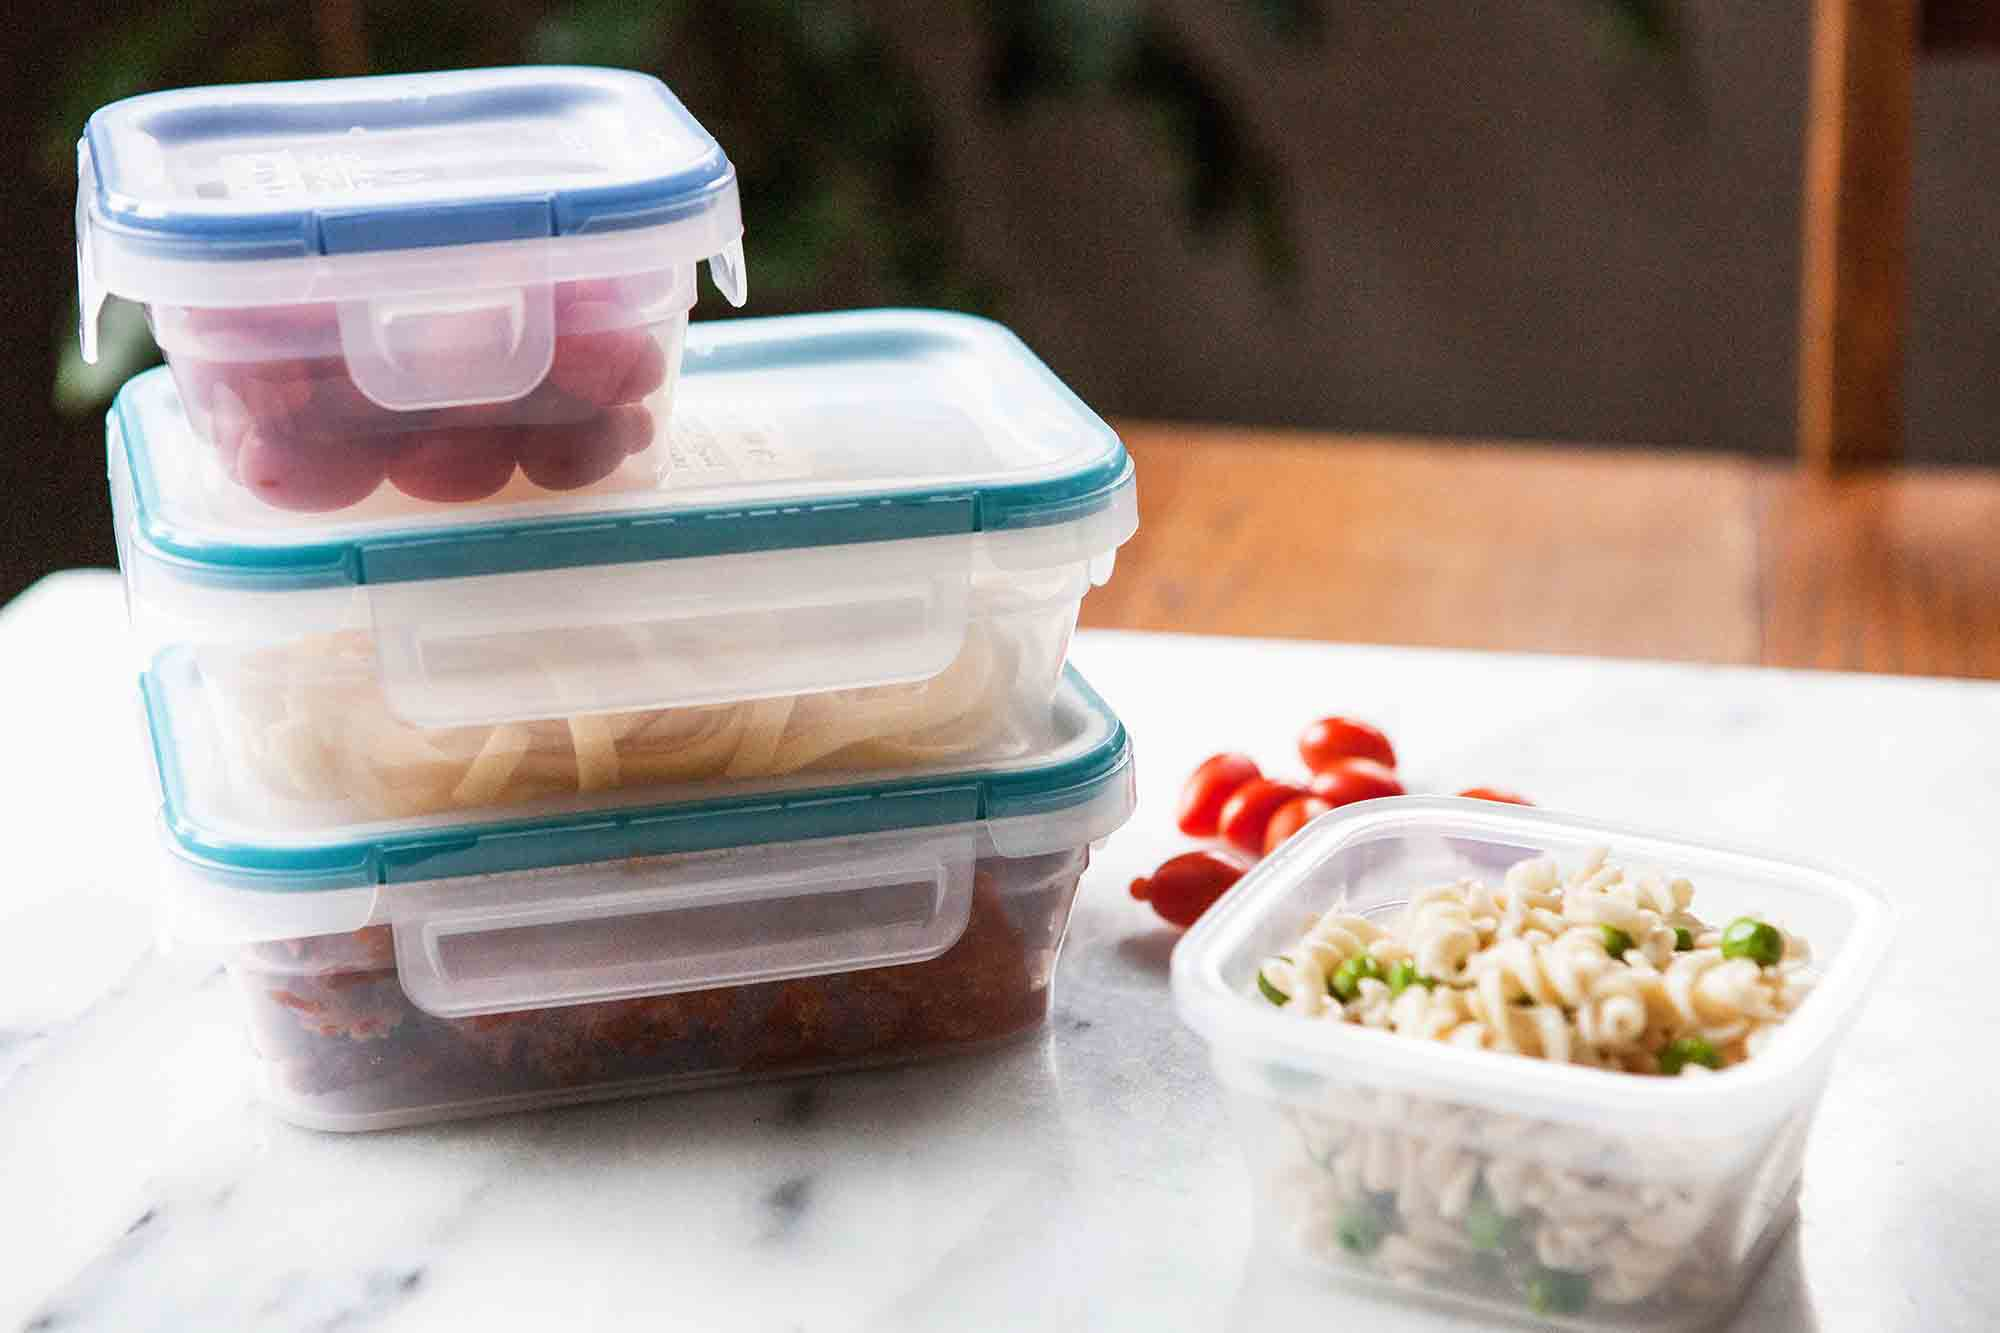 Food Storage Containers - Snap on lids for leftovers